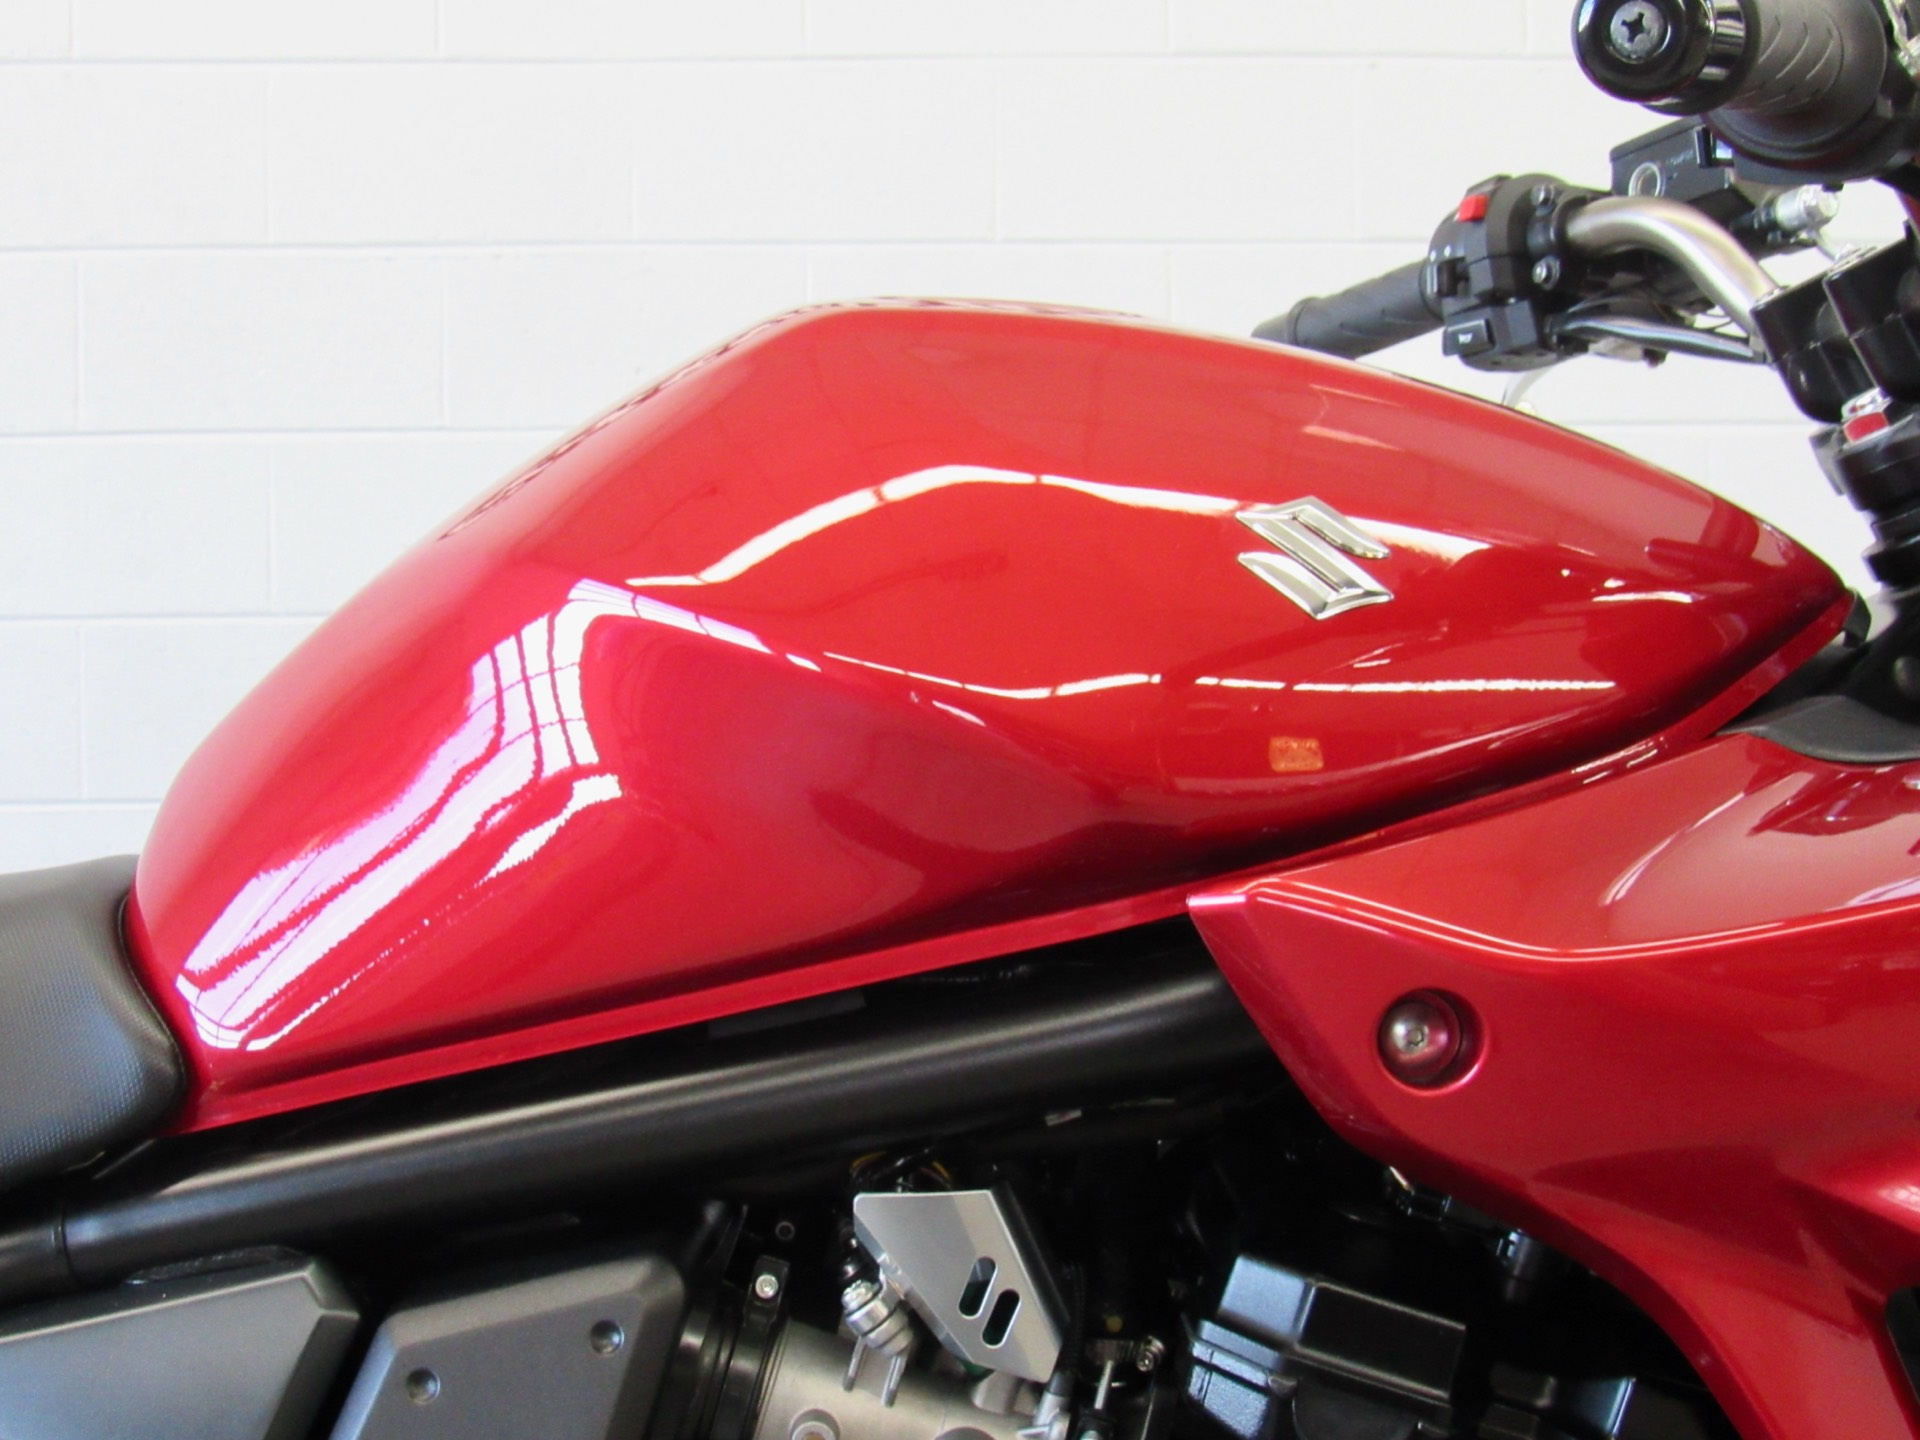 2016 Suzuki Bandit 1250S ABS in Fredericksburg, Virginia - Photo 13